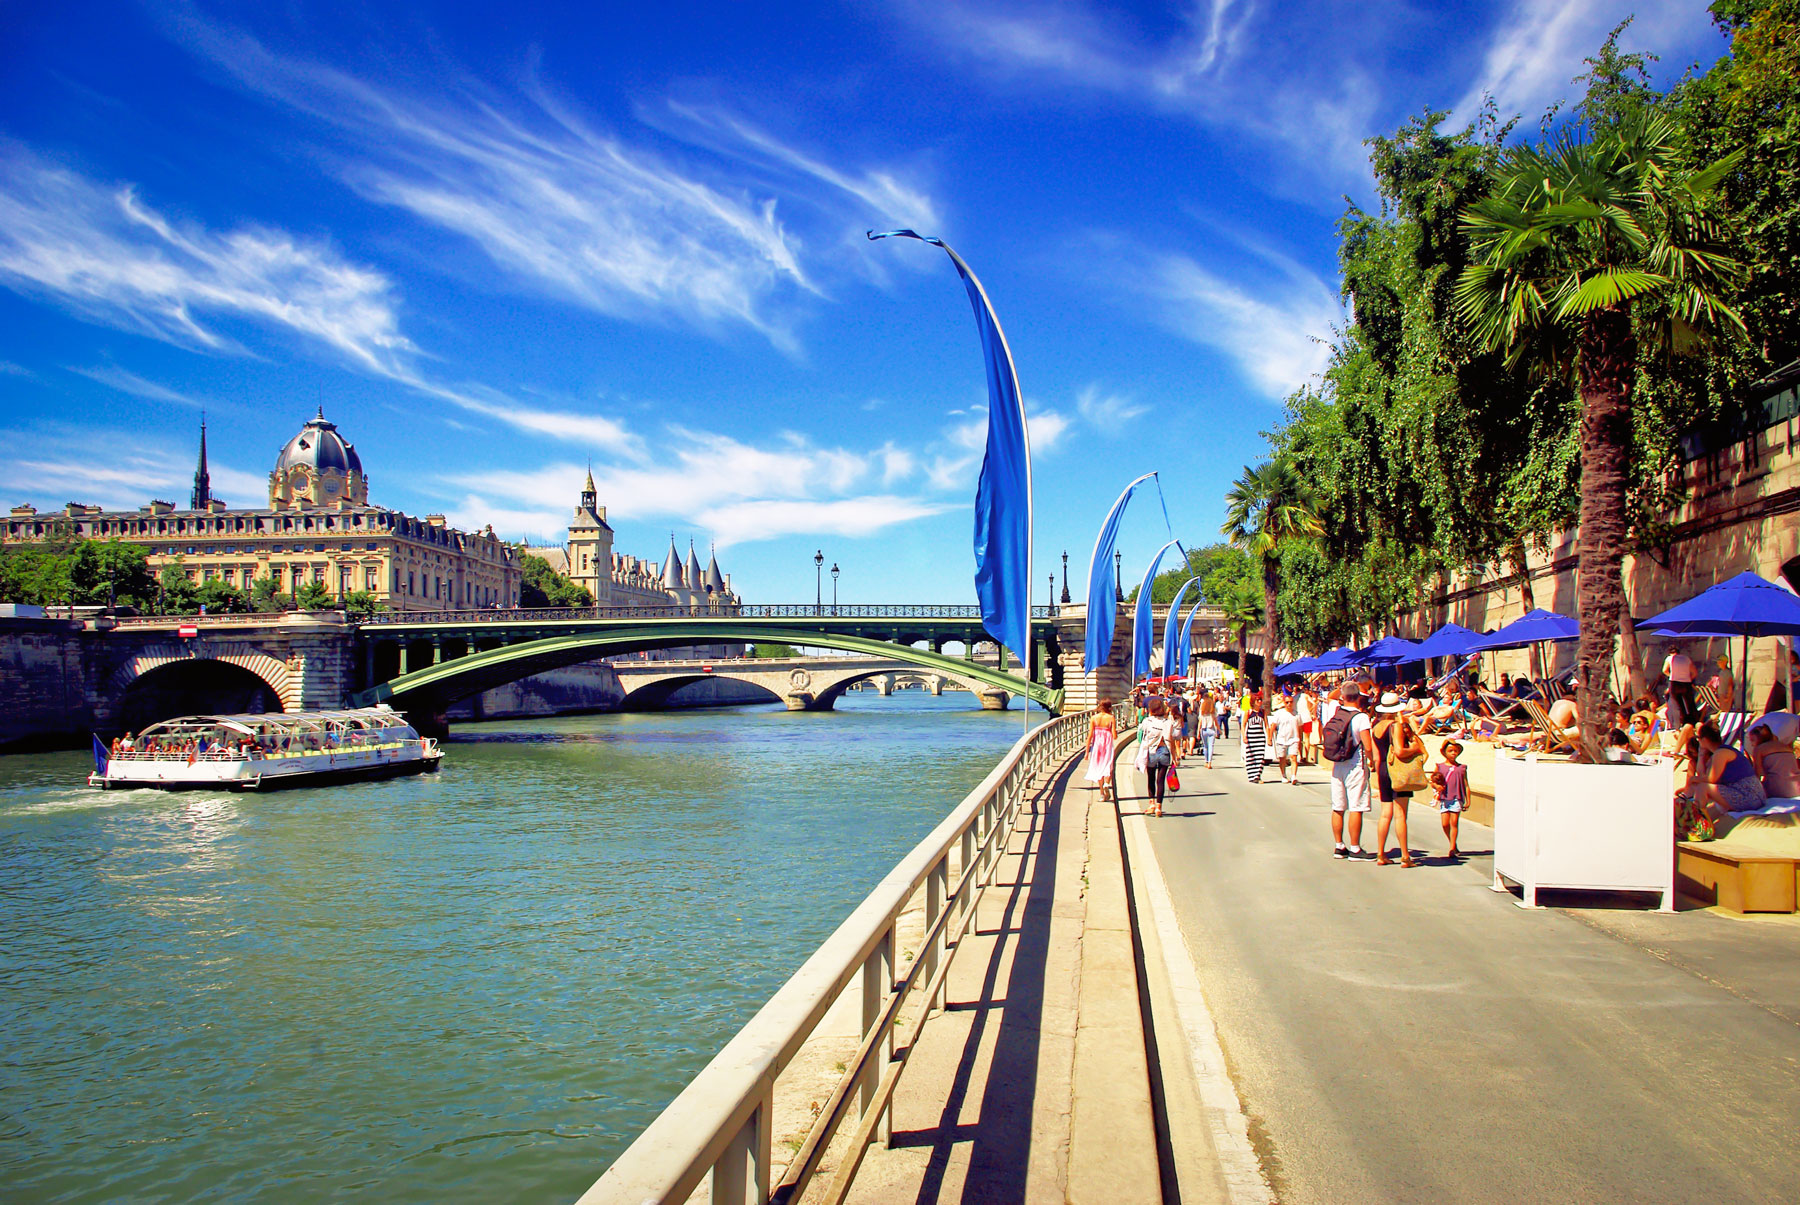 Seasons of the year in France - Summer in Paris